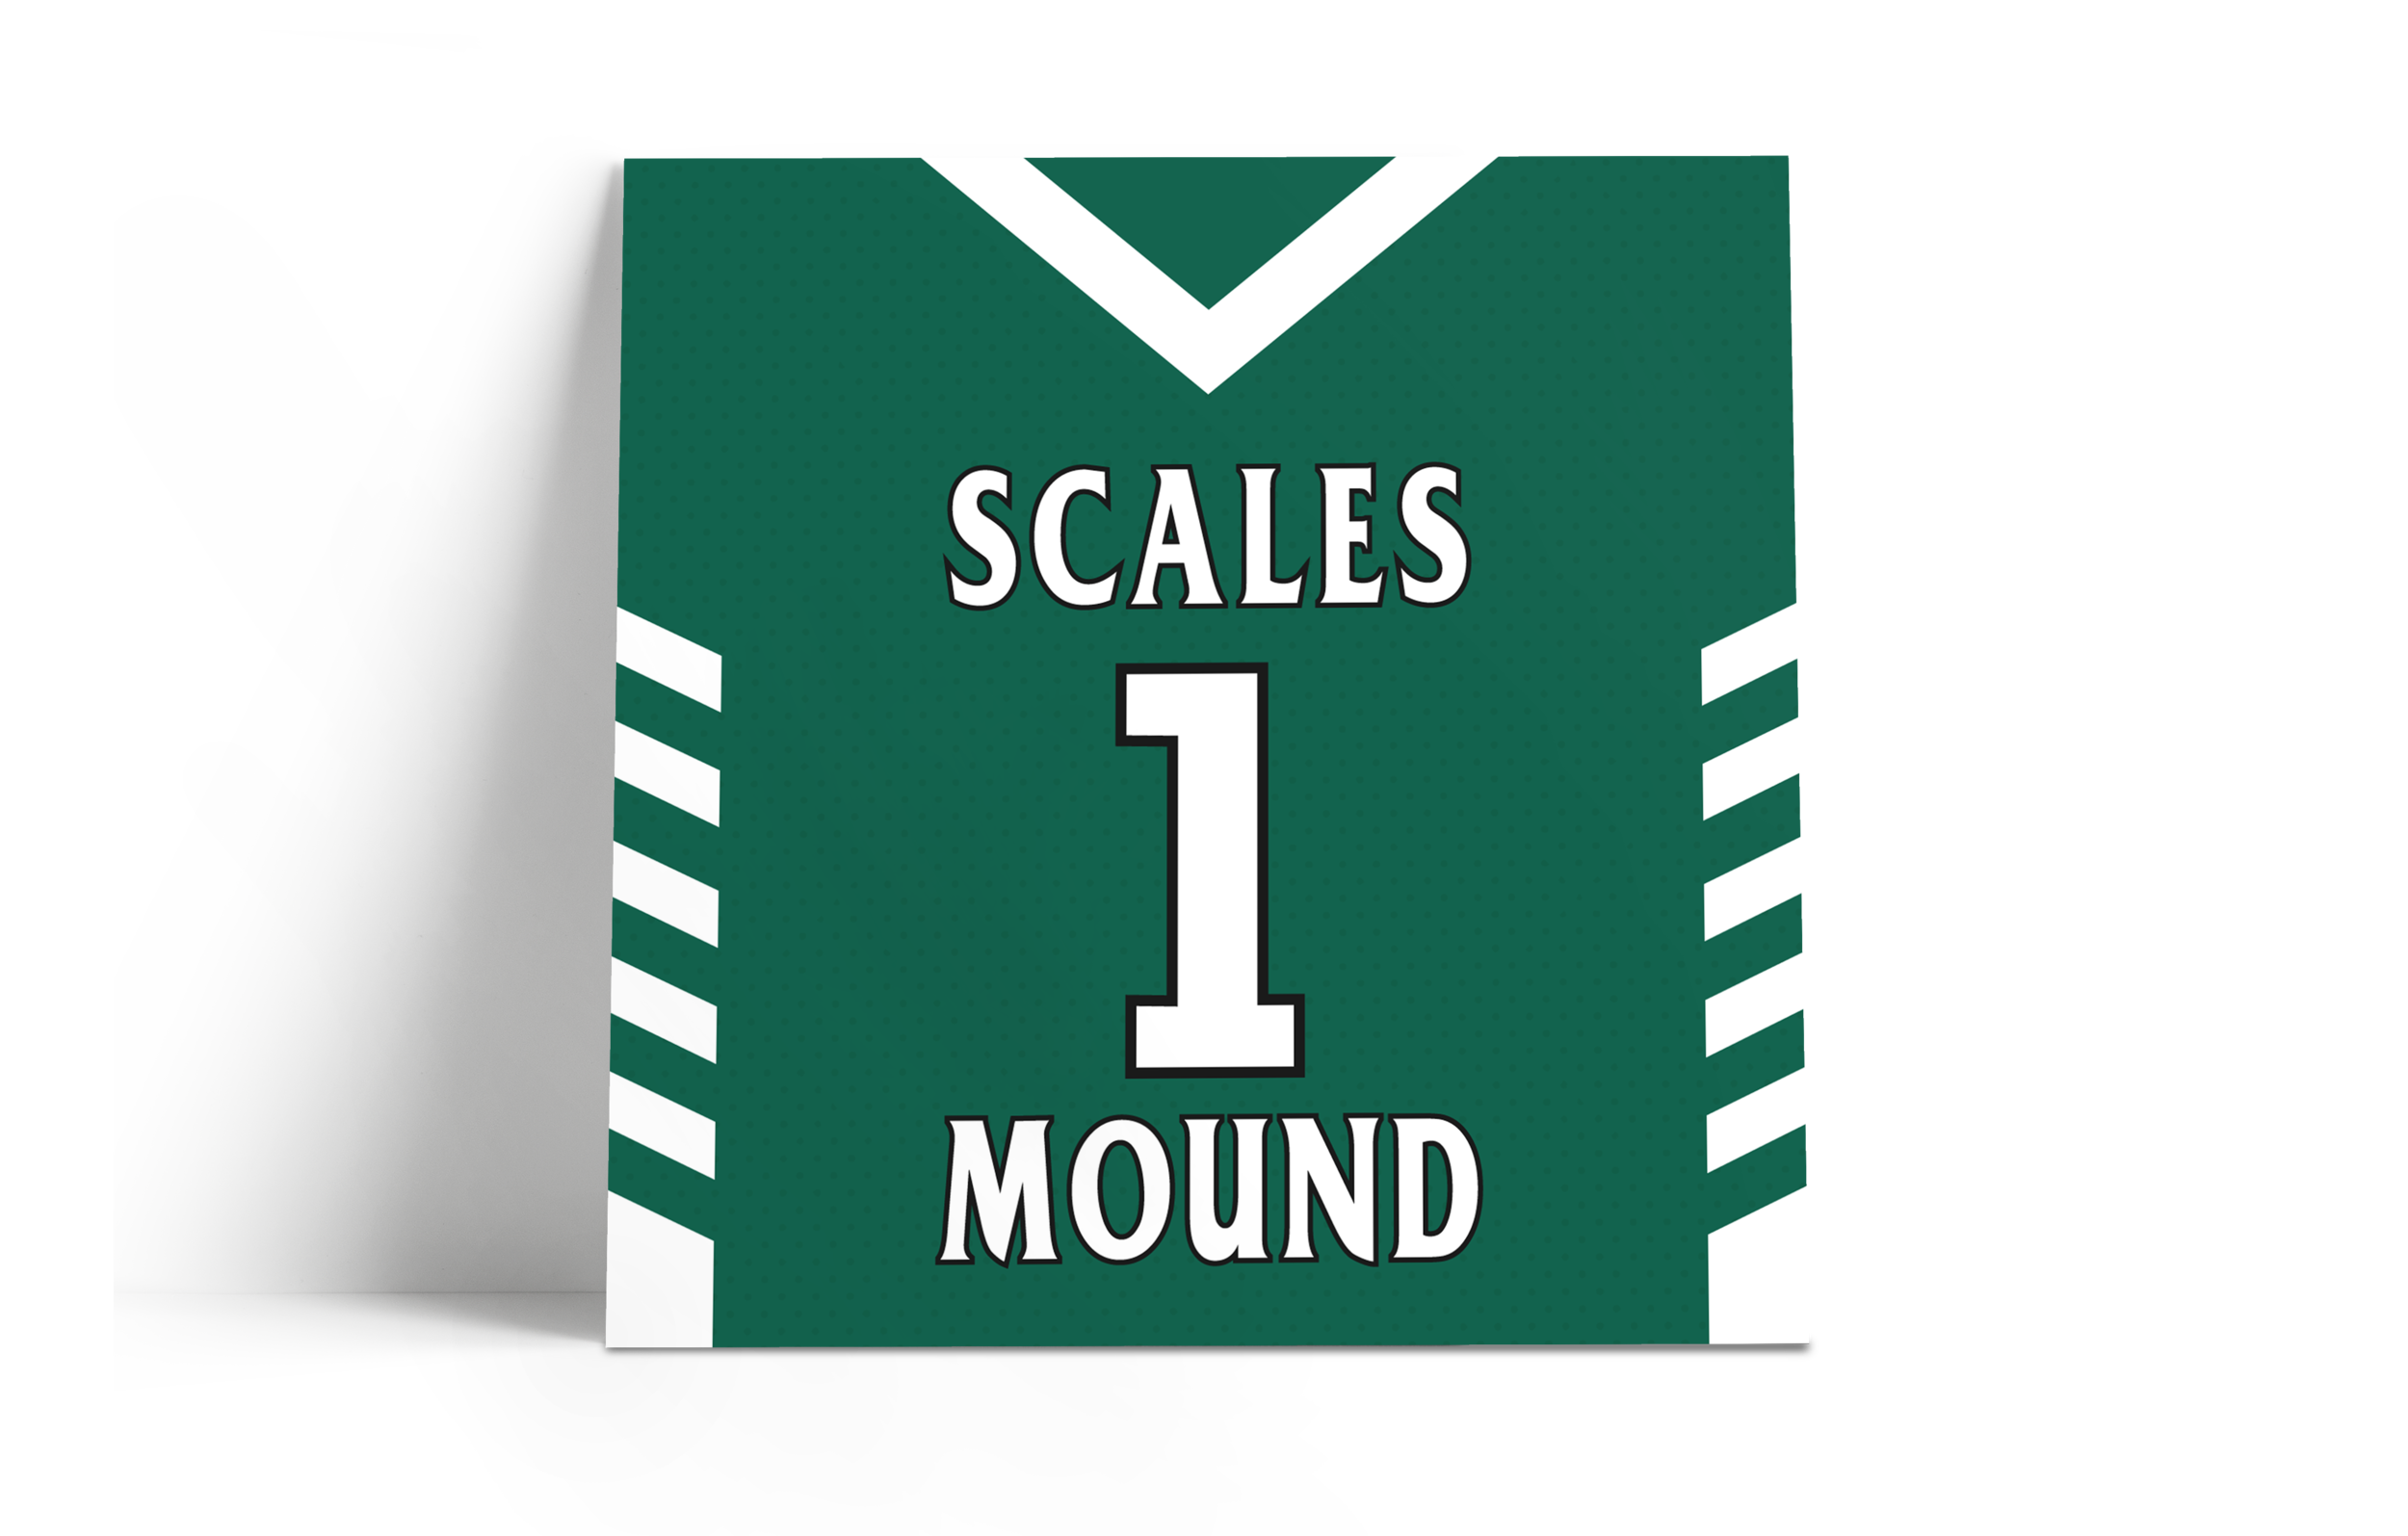 """They turned out phenomenal. Replica did a tremendous job getting the product ready and completed in a very timely fashion, too"" - Erik Kudronowicz, head basketball coach - scales mound hs (IL)"